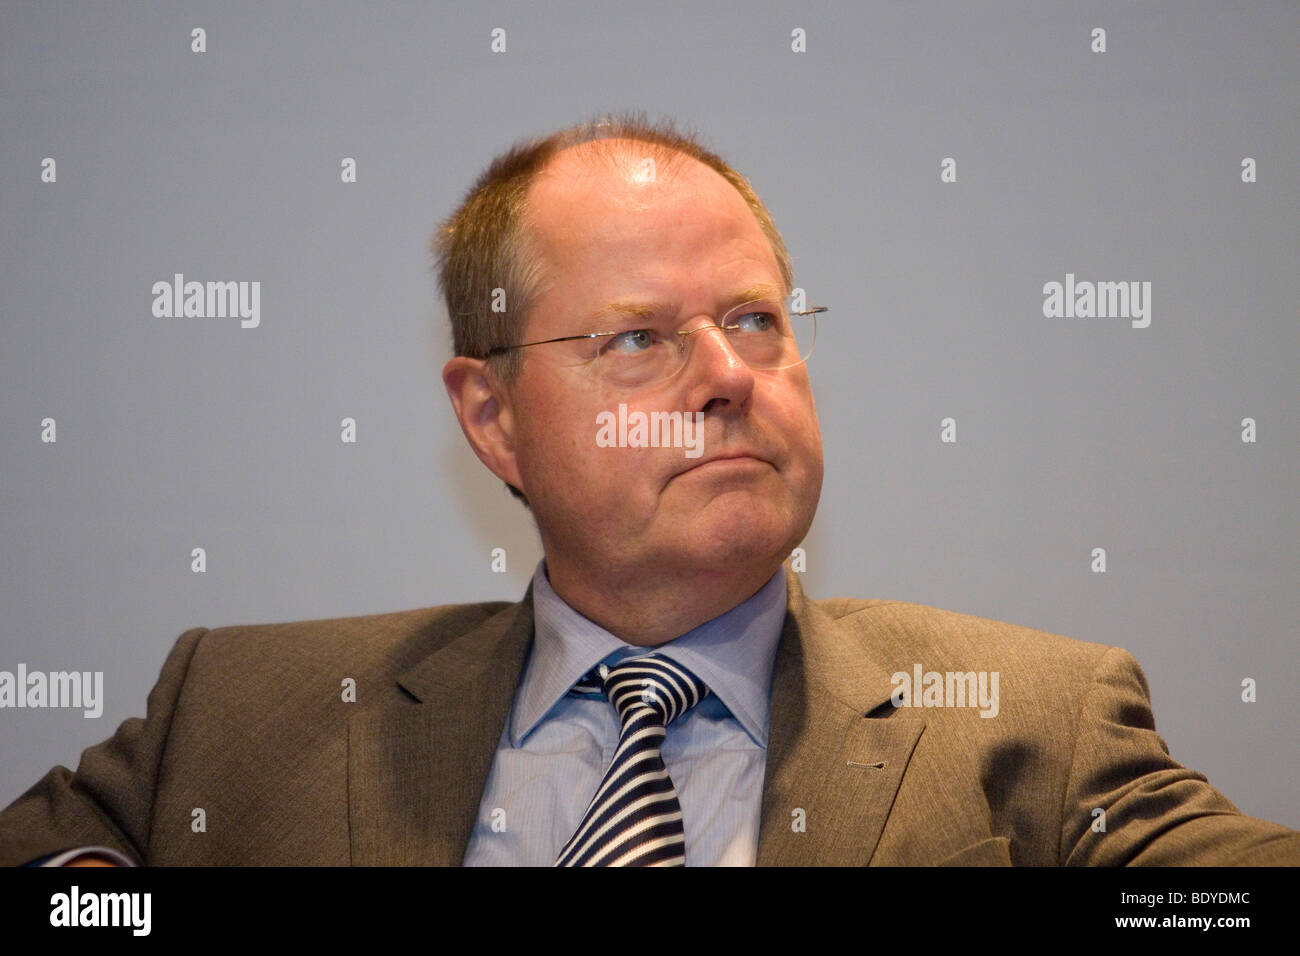 Bundestag parliament elections campaign 2009, campaign event of German Finance Minister Peer Steinbrueck in Siedlerheim - Stock Image